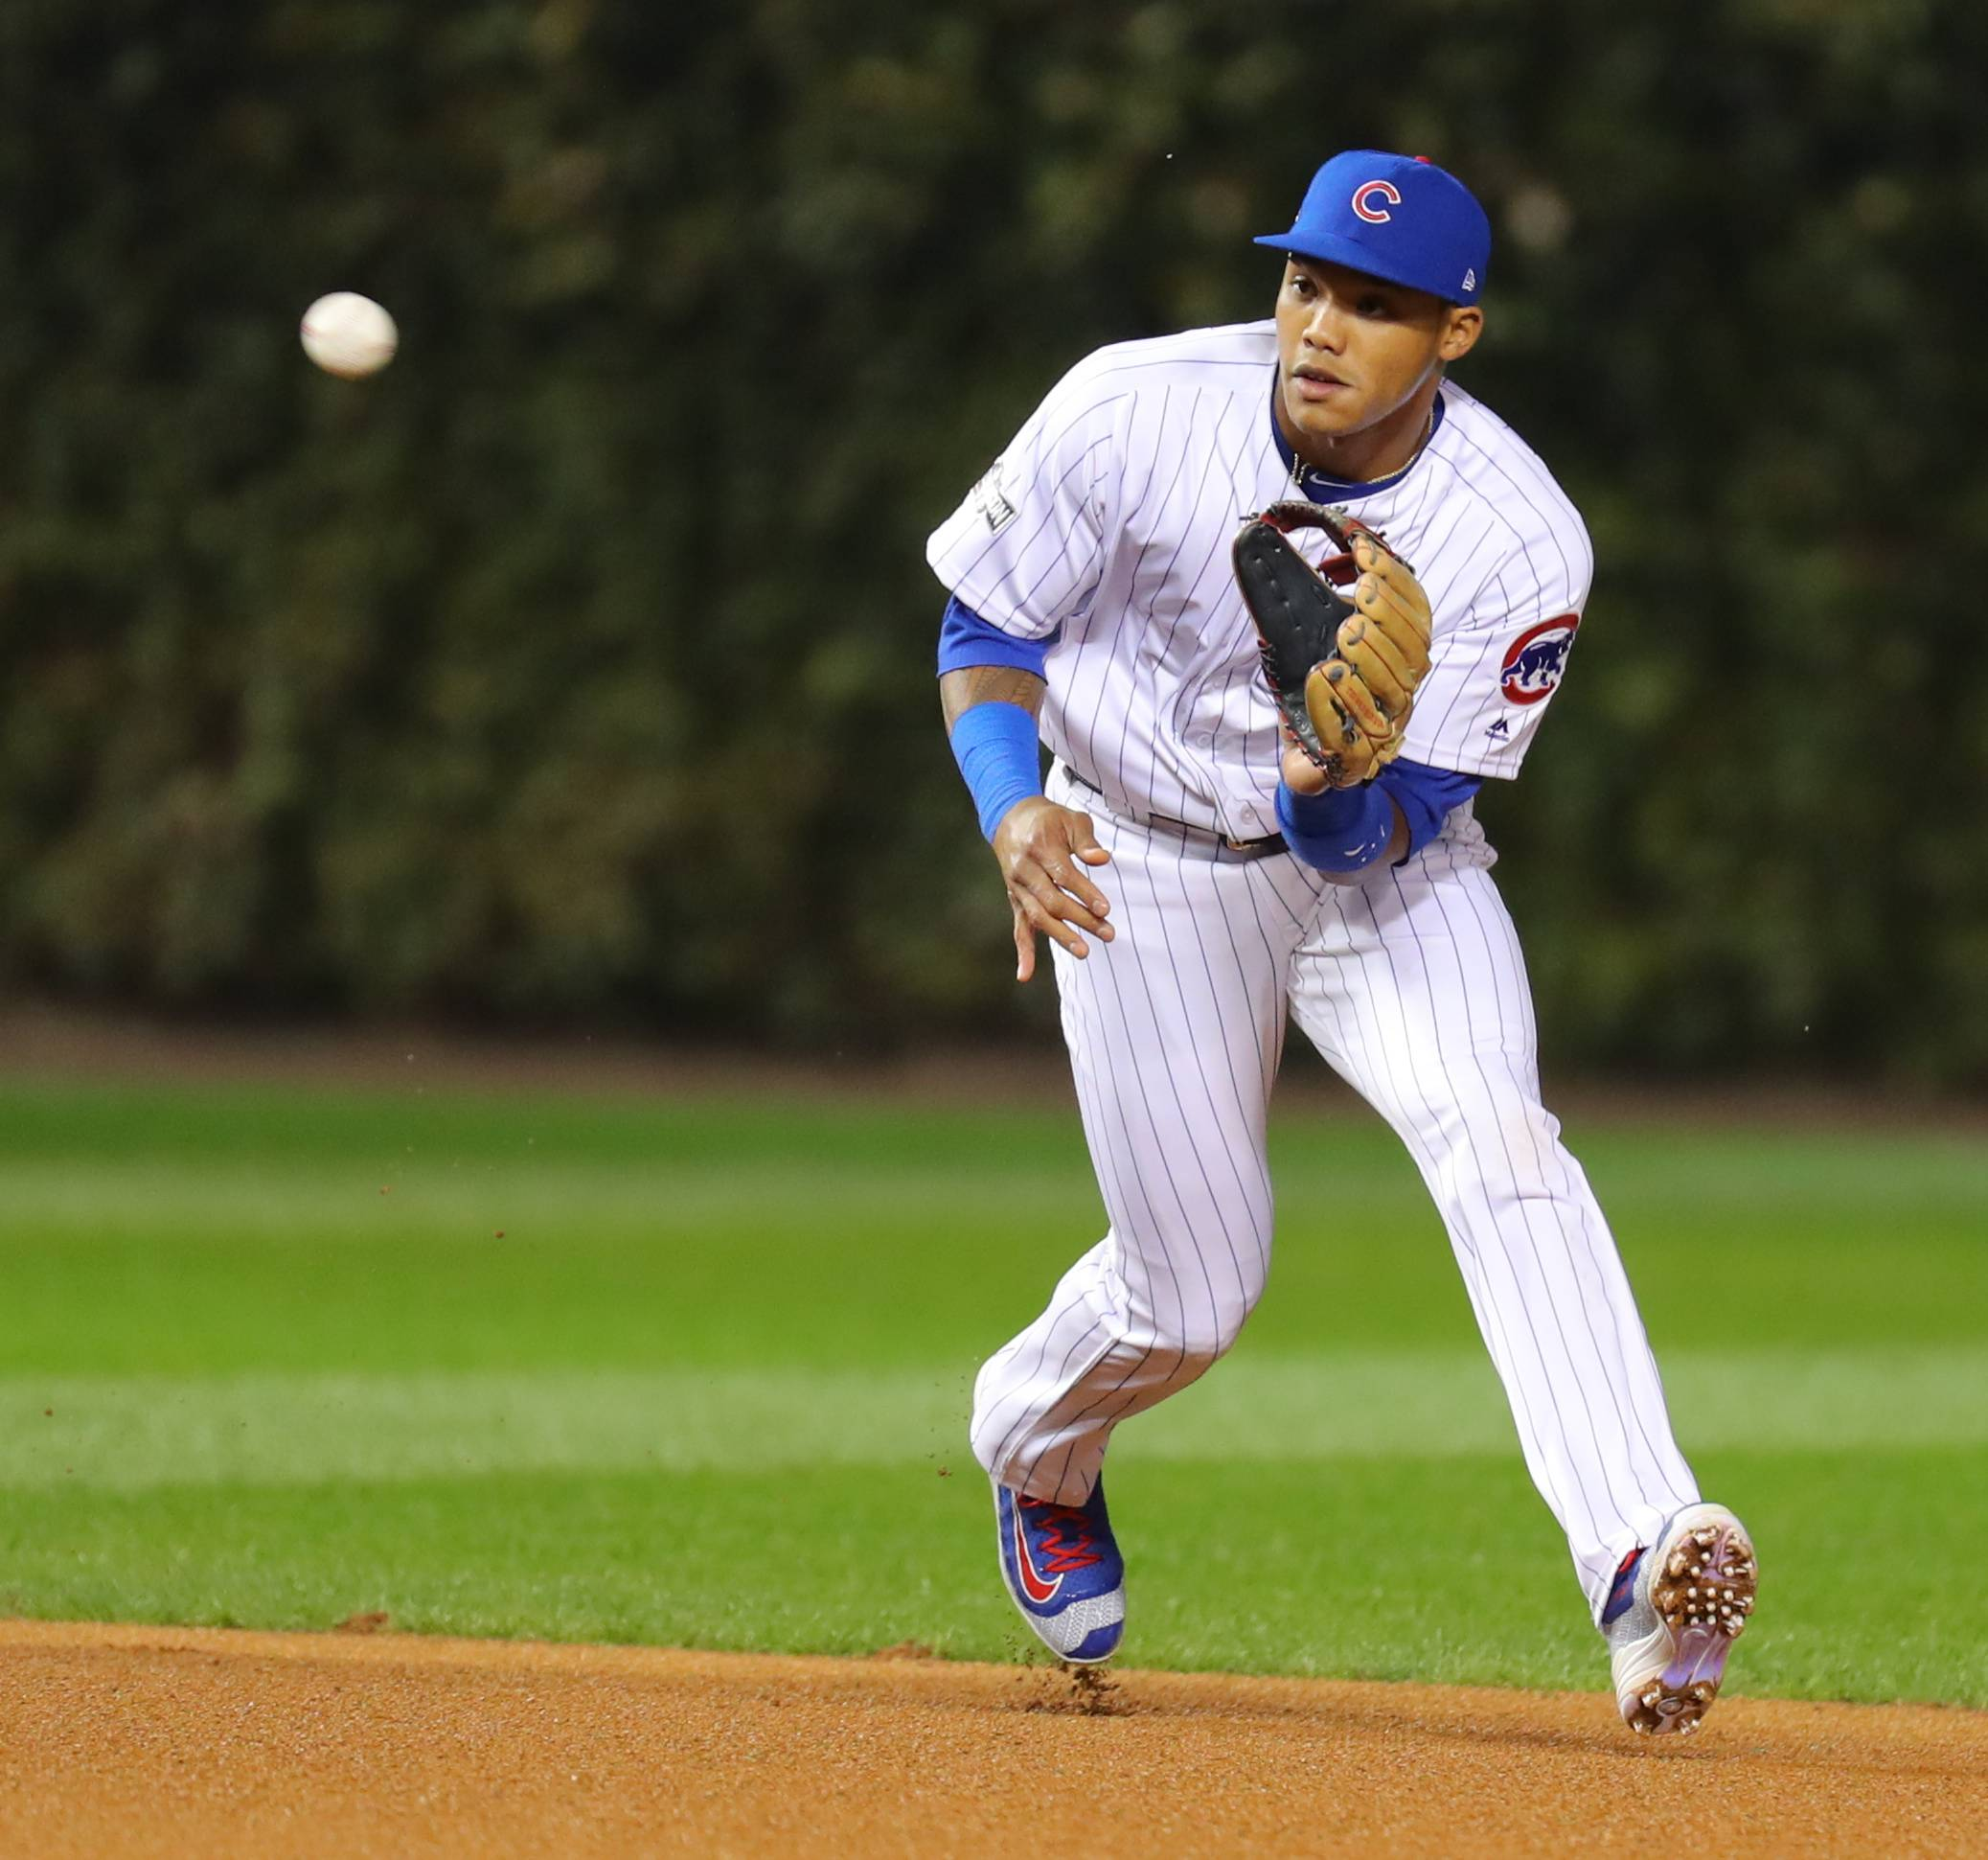 Steve Lundy/slundy@dailyherald.com Cubs shortstop Addison Russell field a ball during game one of the National League division series at Wrigley Field in early October. Russell is one of four Cubs who are Gold Gloves finalists.